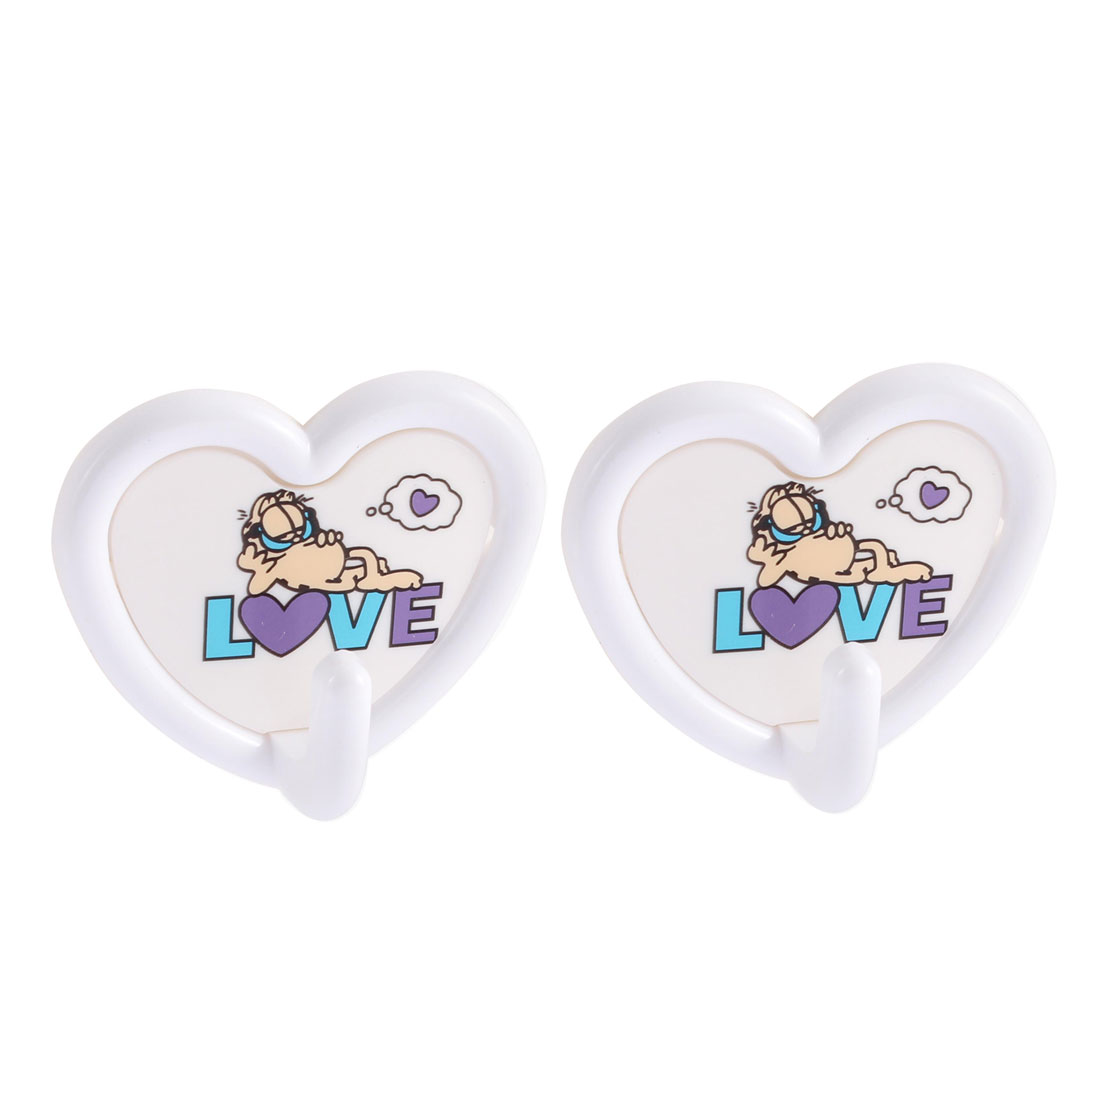 Door Wall Plastic Heart Design Self-adhesive Towel Key Hanger Holder Hook 2pcs